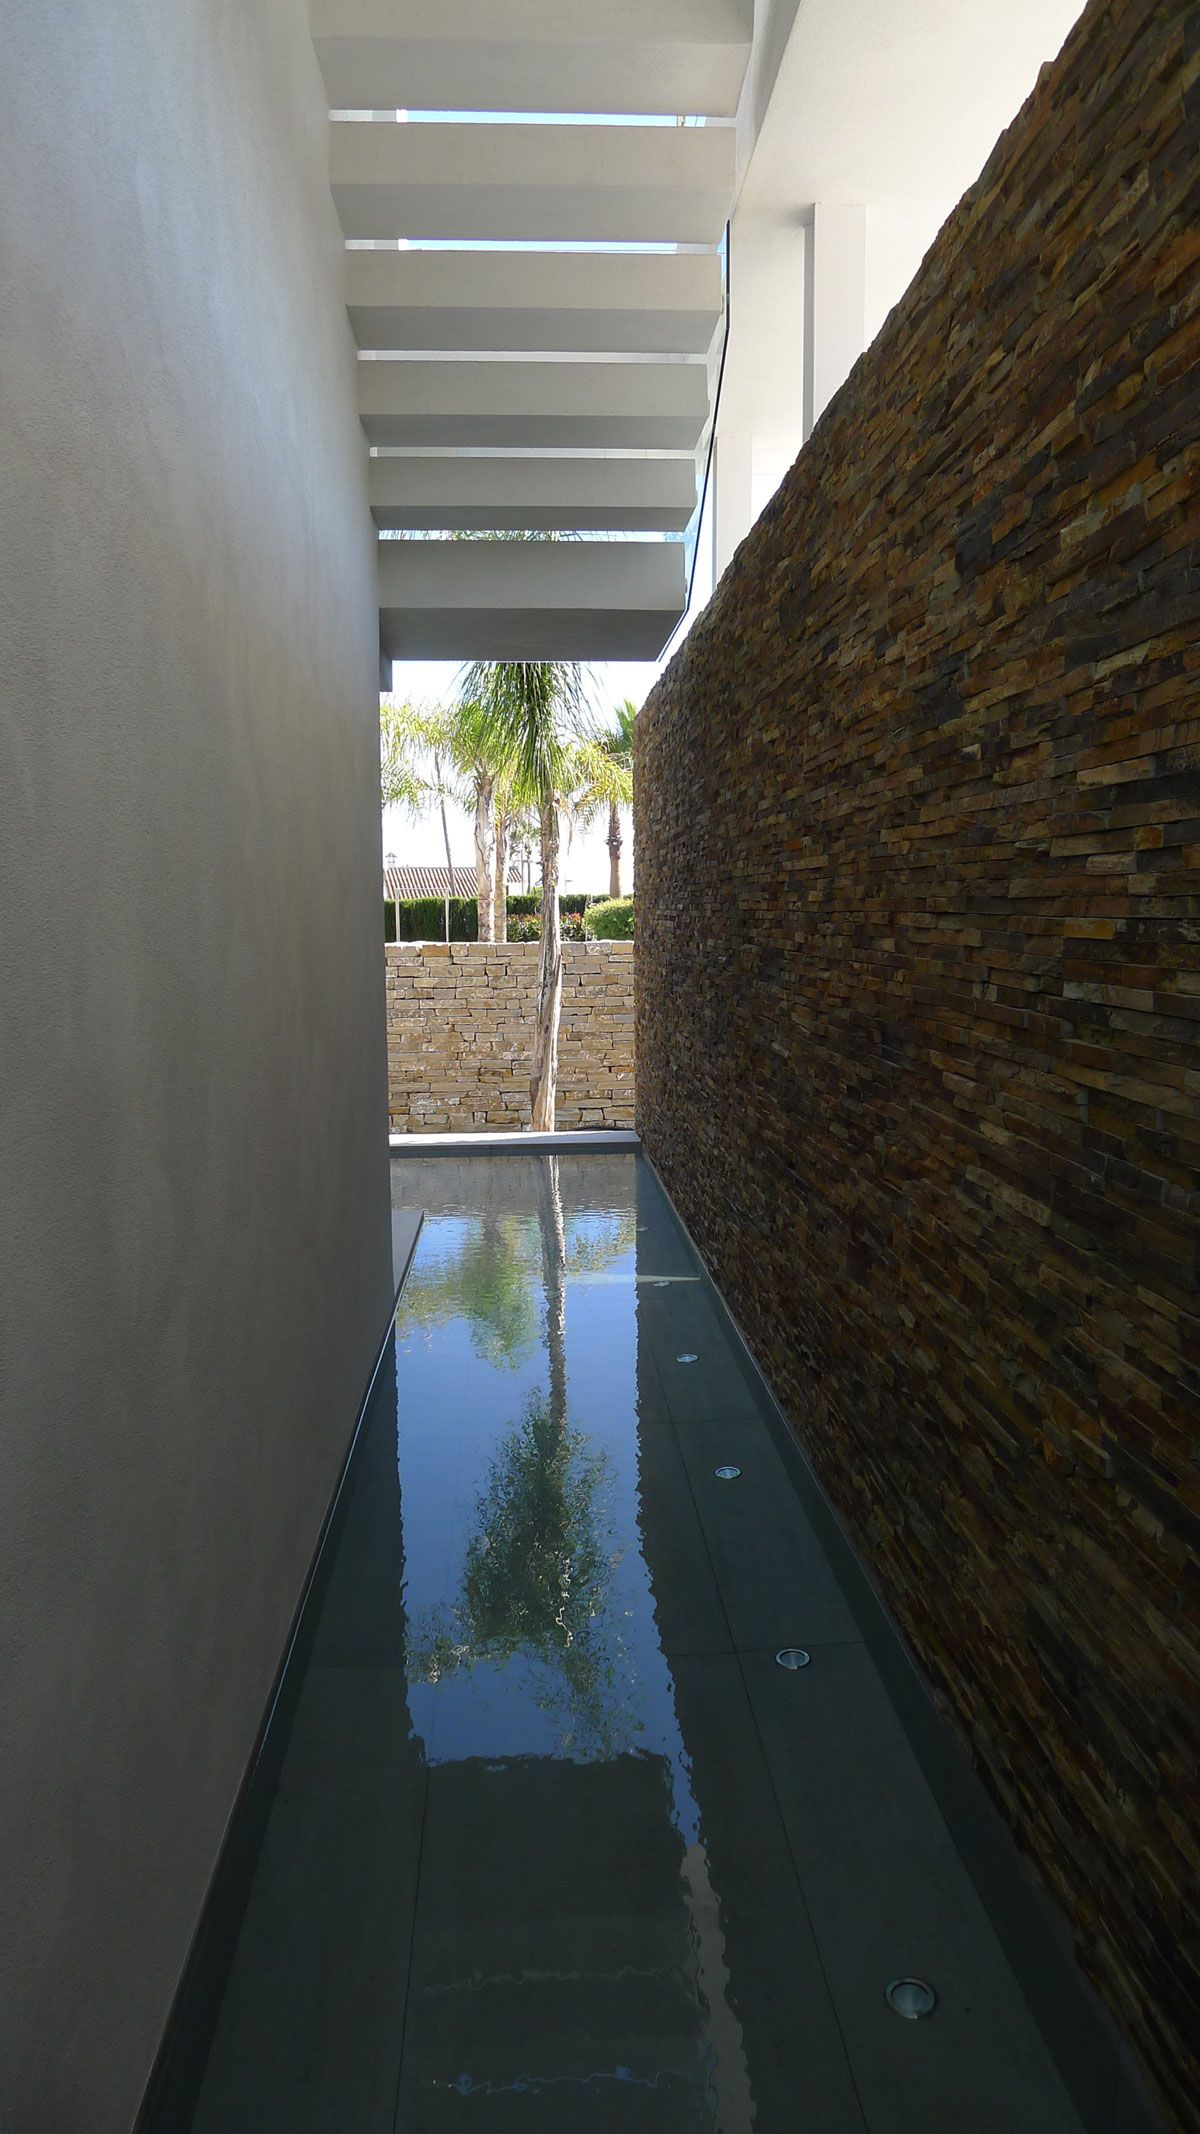 The Cool Blue Villa's one meter canal